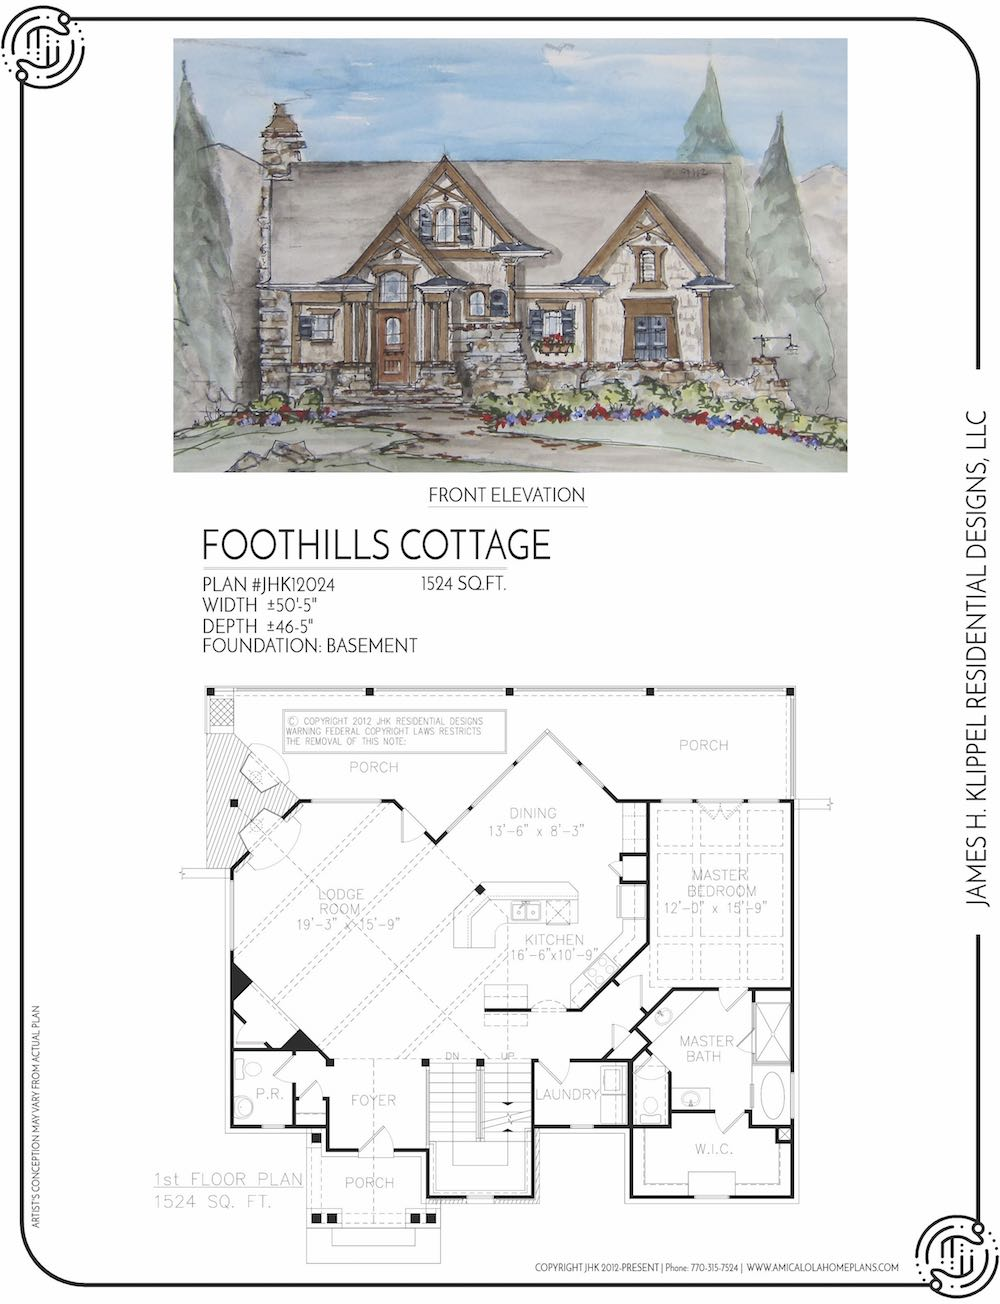 Foothills Cottage — Rustic Mountain House Plans | Amicalola ... on quaint cottage house plans, harmony cottage house plans, simple cottage house plans, louisiana cajun cottage house plans, coastal living cottage house plans, luxury mountain house plans, small yellow cottage house plans, rustic house plans, hawaiian cottage plans, 2 story cottage house plans, mountain cottage house plans, white cottage house plans, sprawling one-story house plans, narrow cottage house plans, stone cottage house plans, lakefront cottage house plans, new england cottage house plans, raised cottage house plans, best cottage house plans,